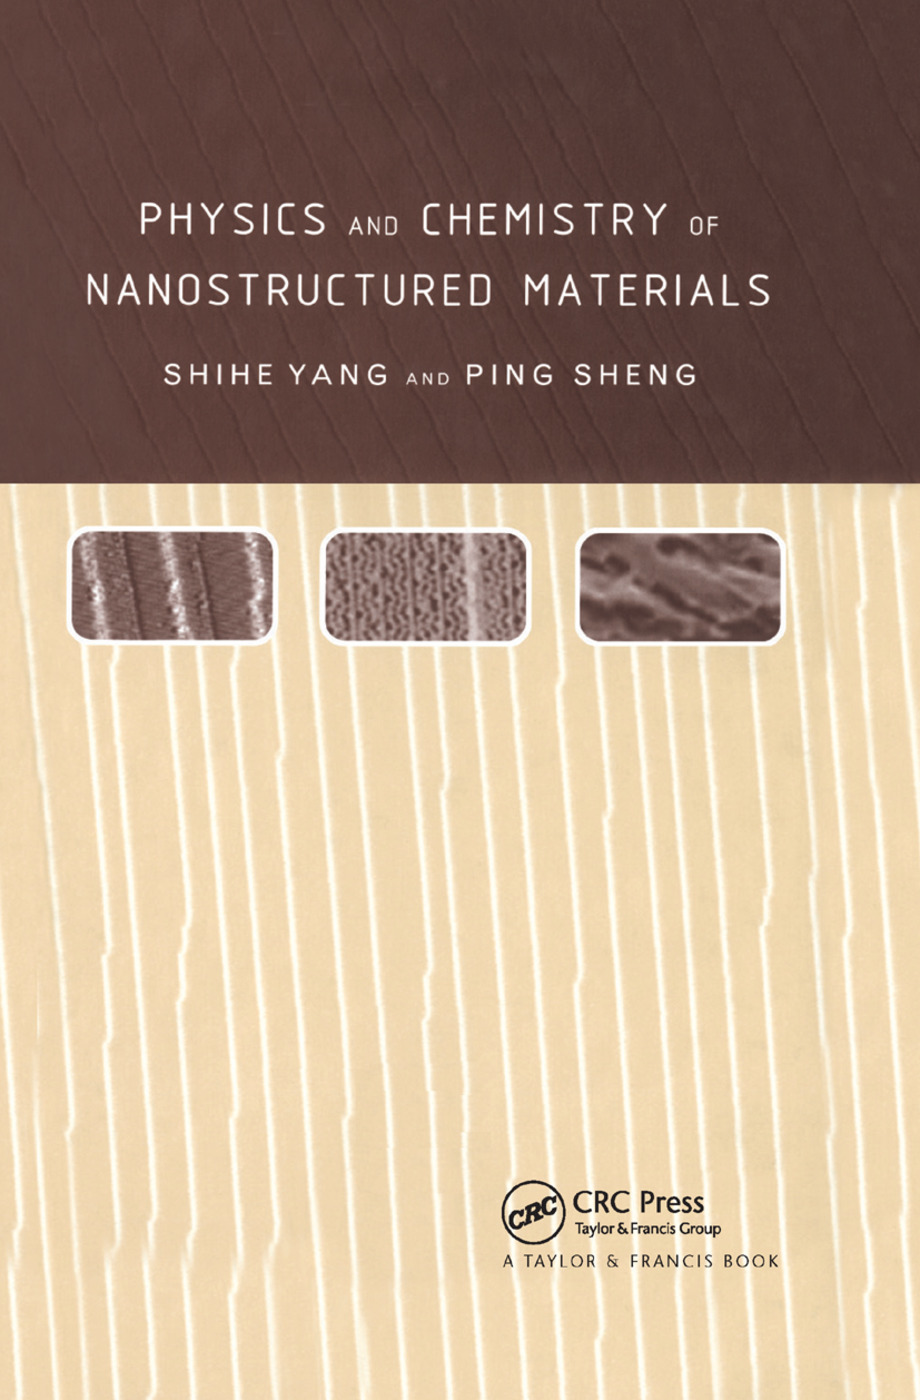 Physics and Chemistry of Nano-structured Materials